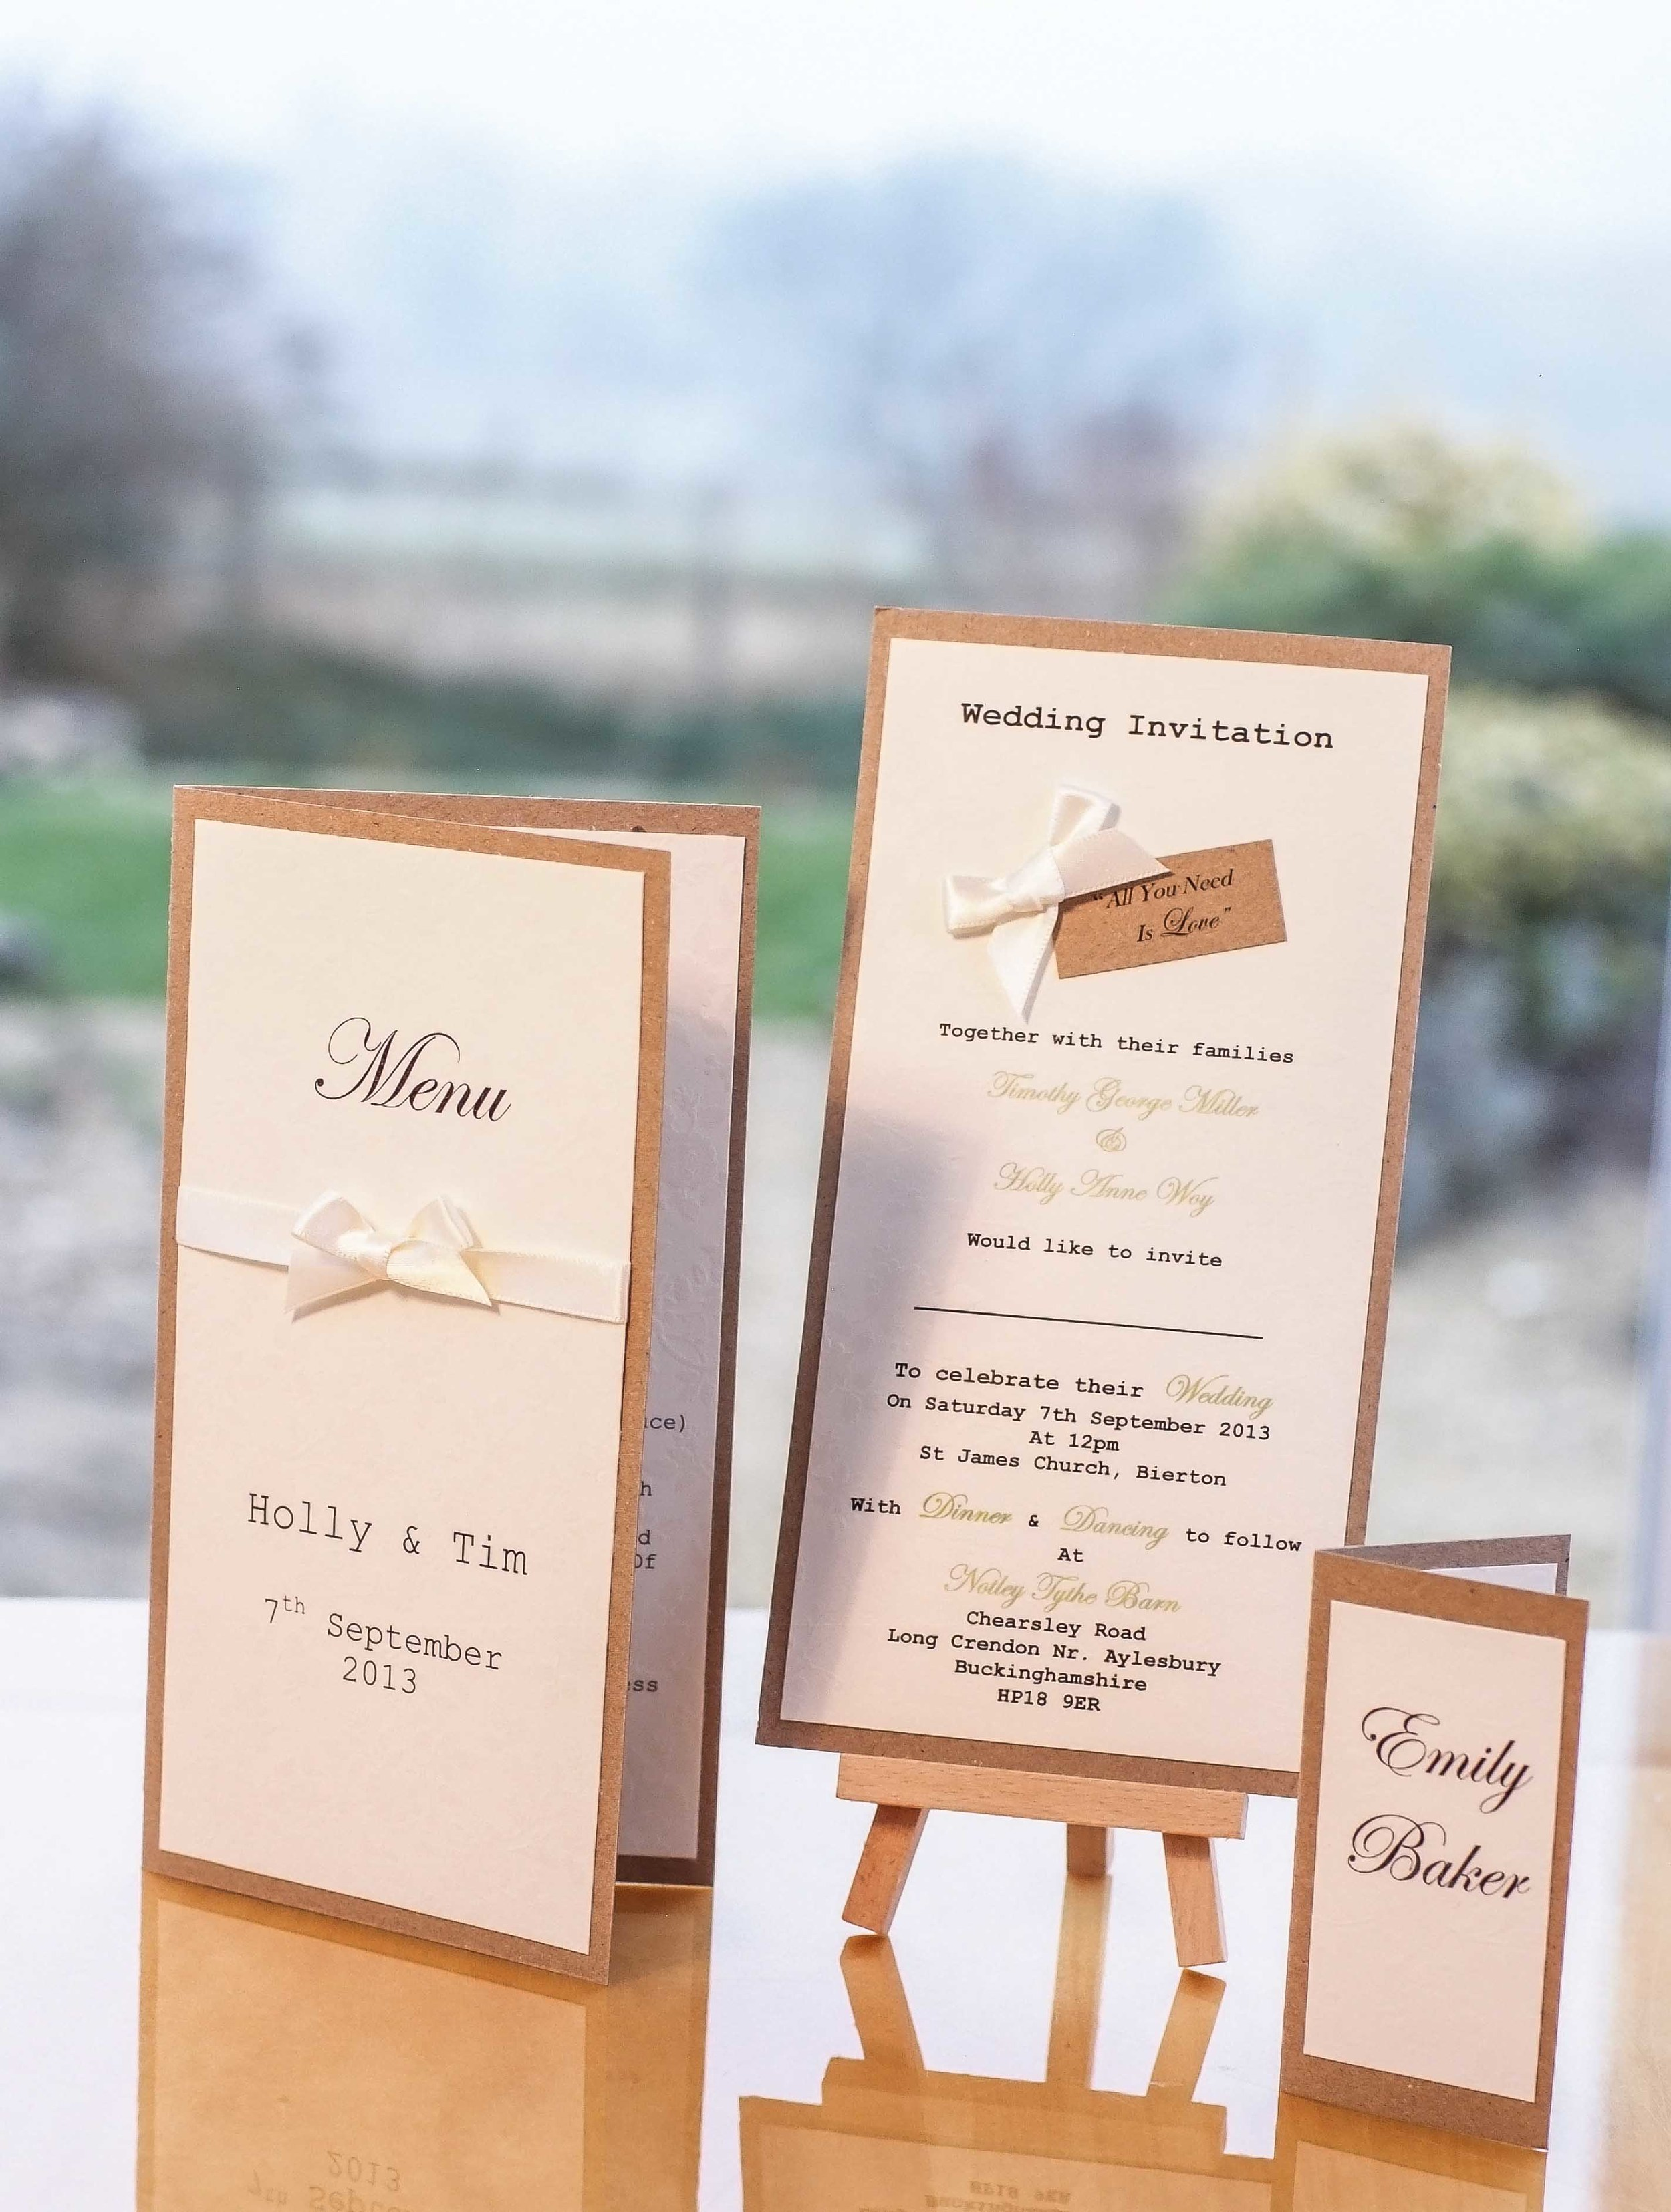 The All You Need Is Love wedding Invitation